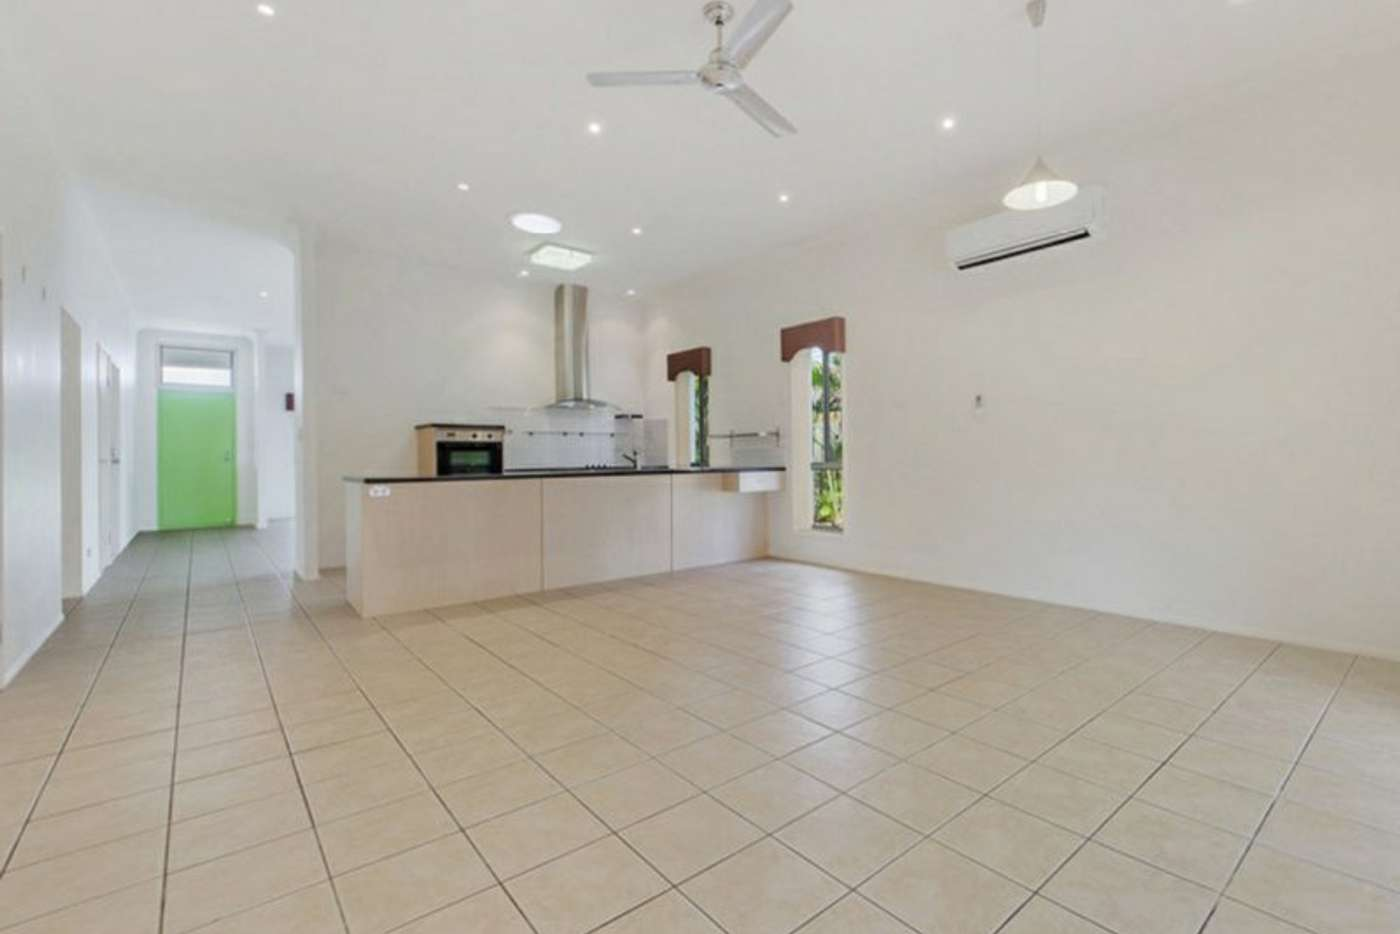 Fifth view of Homely house listing, 54 Merrilaine Crescent, Merrimac QLD 4226